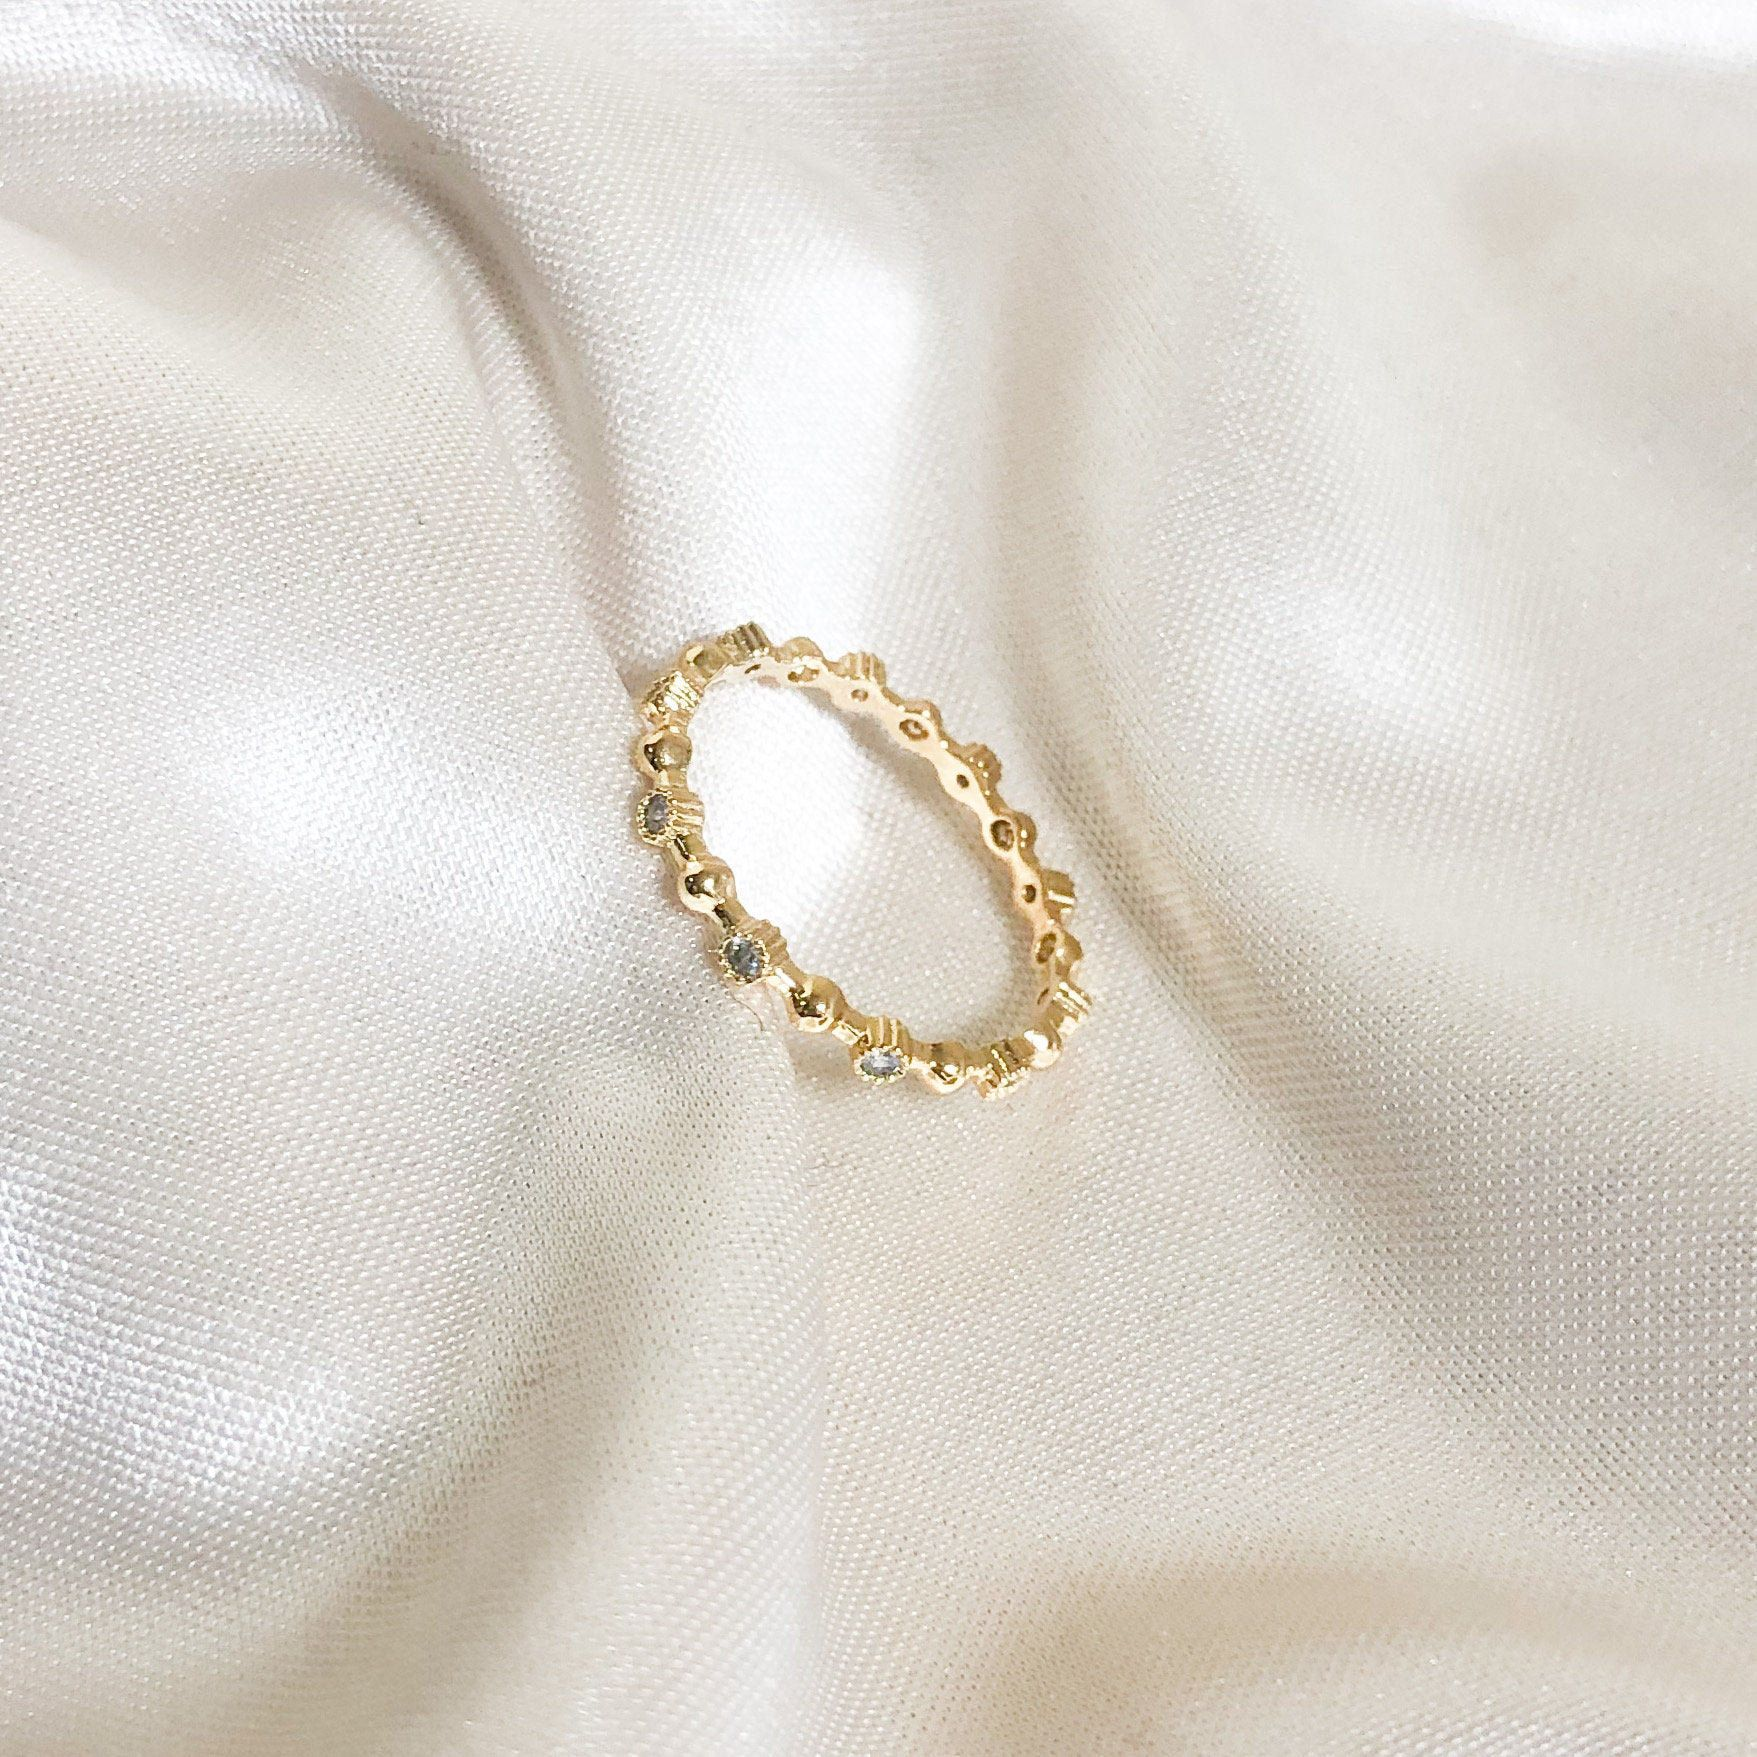 Photo of Cubic zirconia ring, Dainty ring, Stacking ring, Minimalist ring, Dainty jewelry, Minimalist jewelry, Tiny cz ring, Gold dainty ring